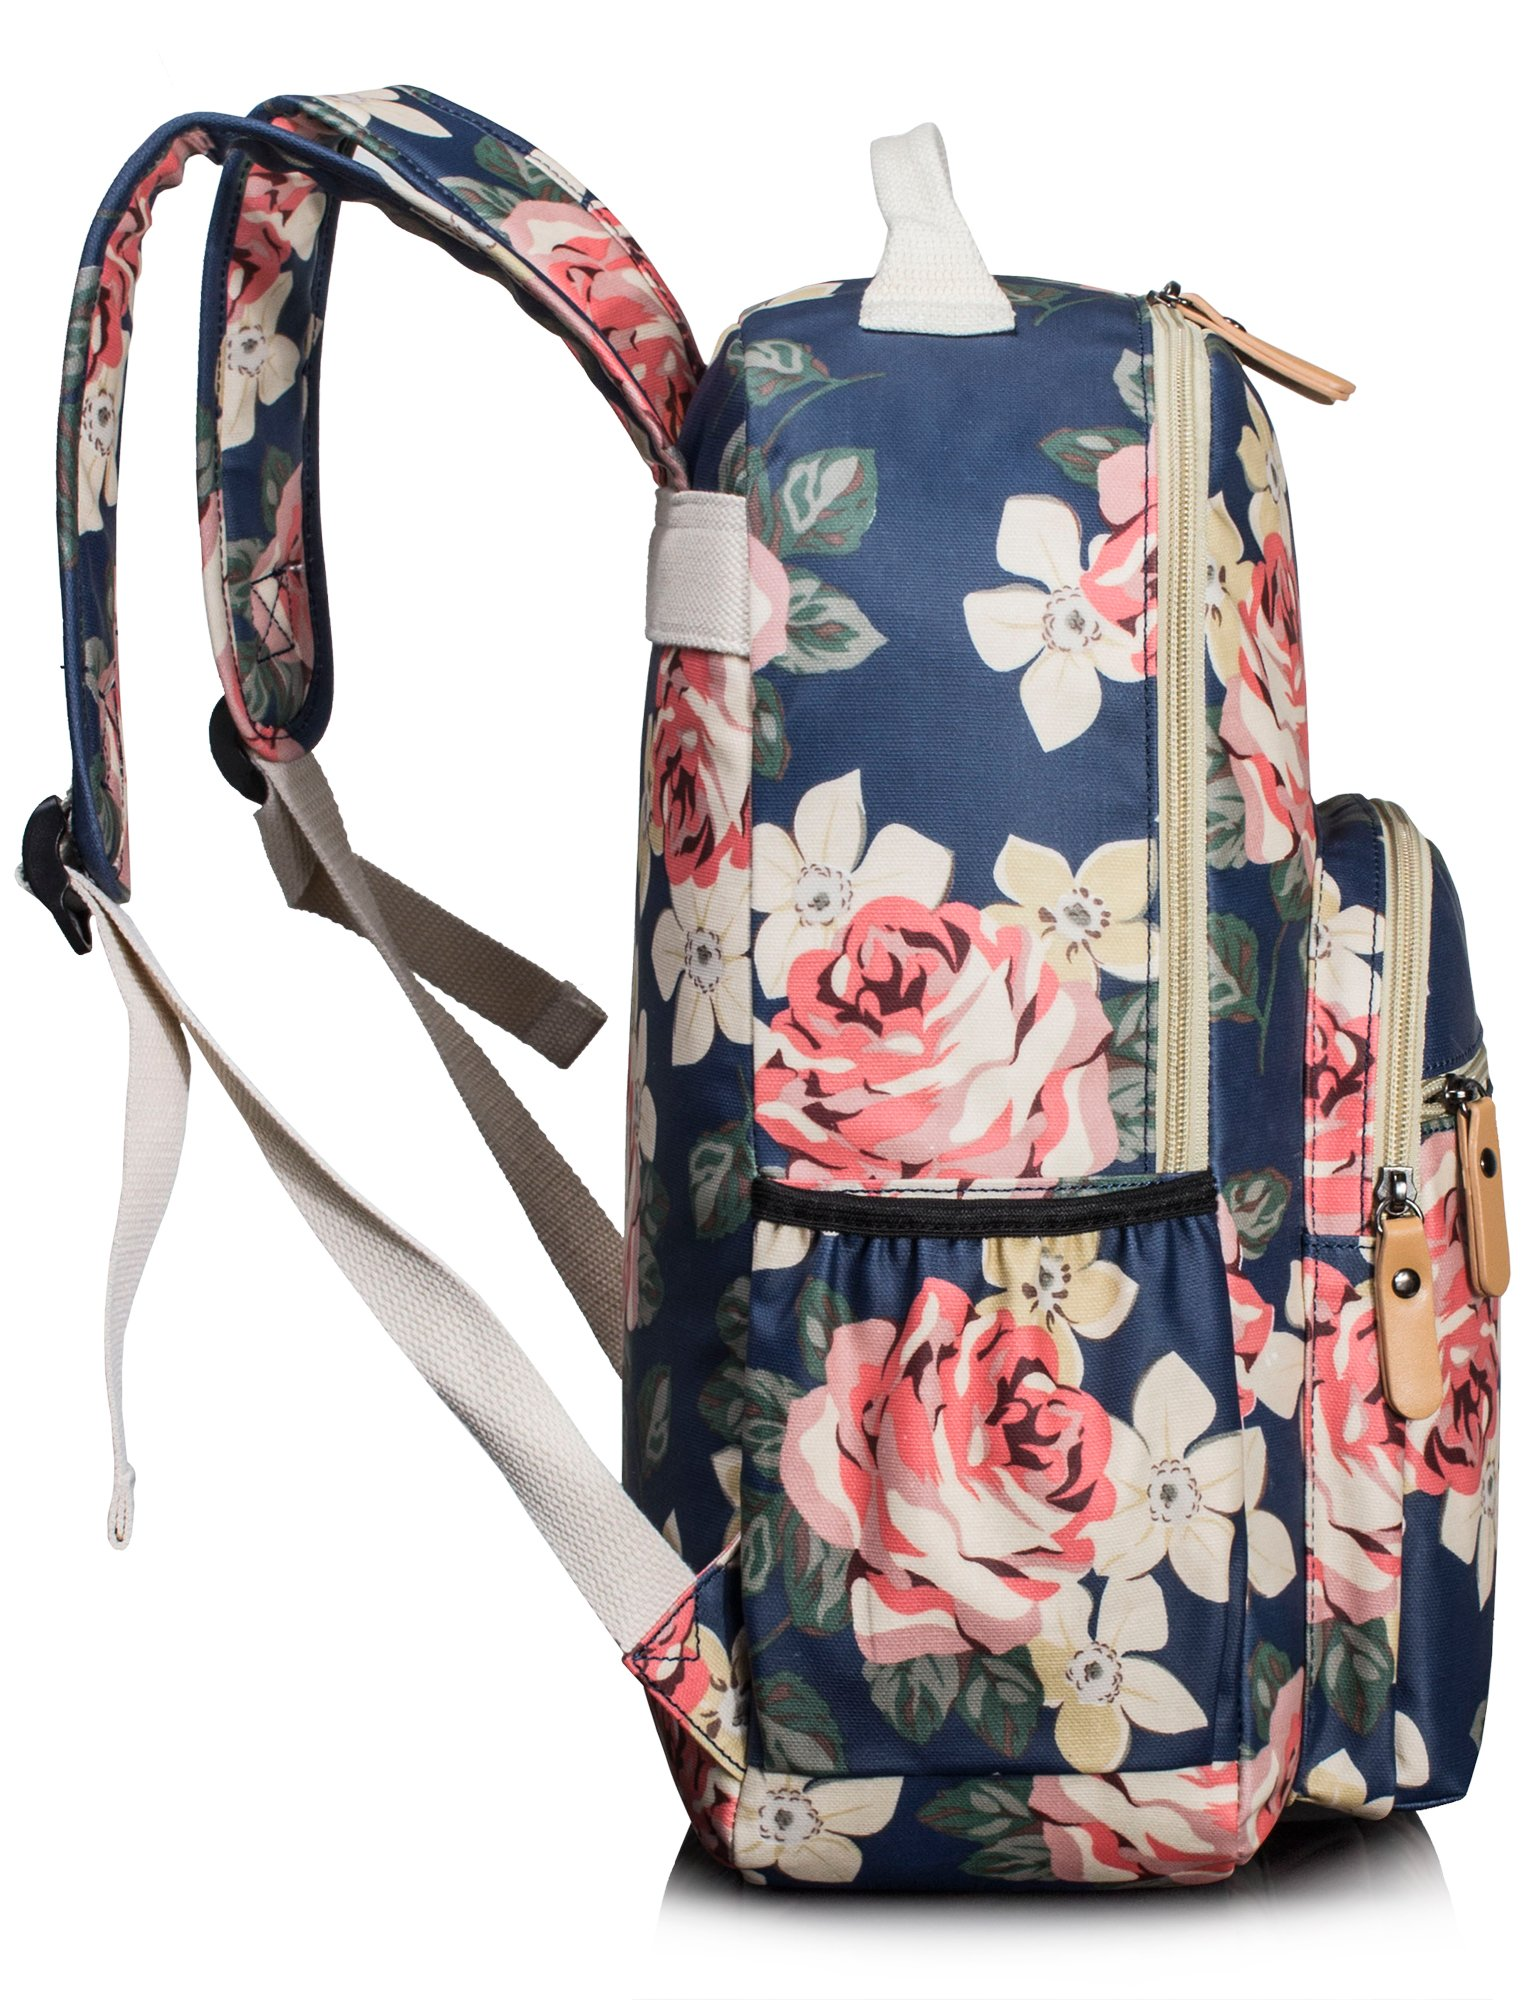 Leaper Floral Water-resistant Laptop Backpack College Bags Daypack Dark Blue by Leaper (Image #4)